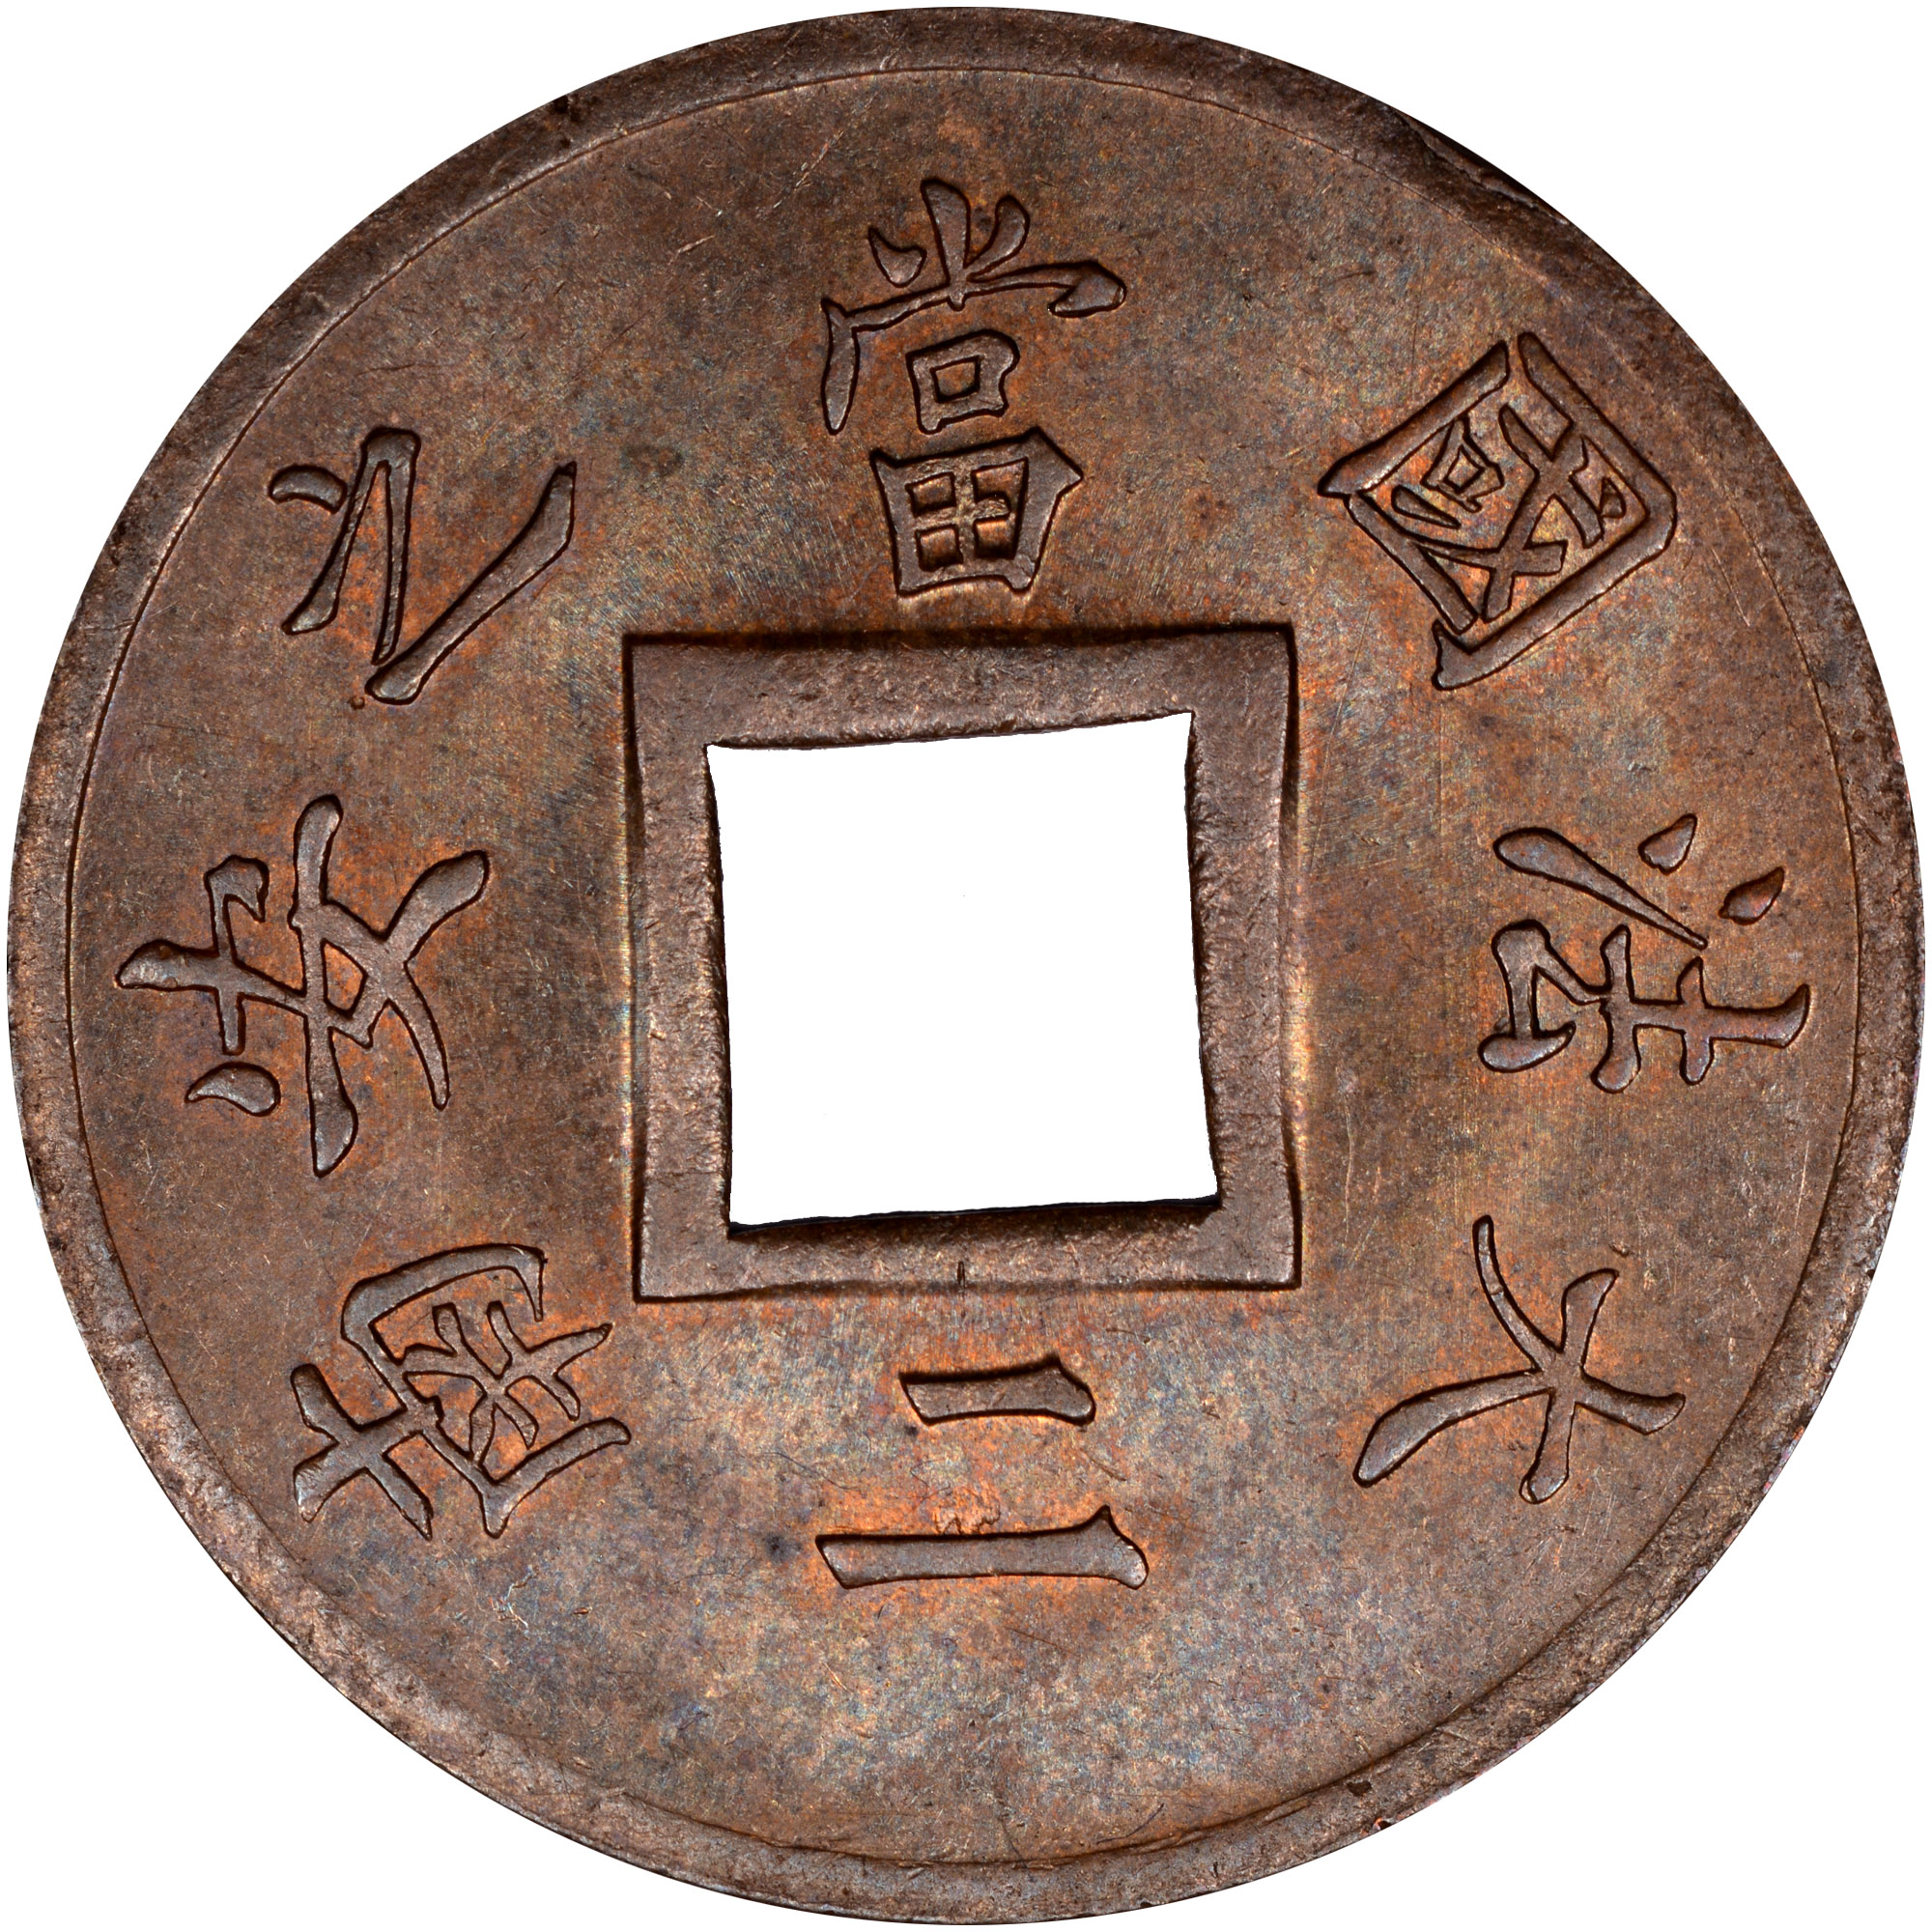 French Cochin China 2 Sapeque reverse